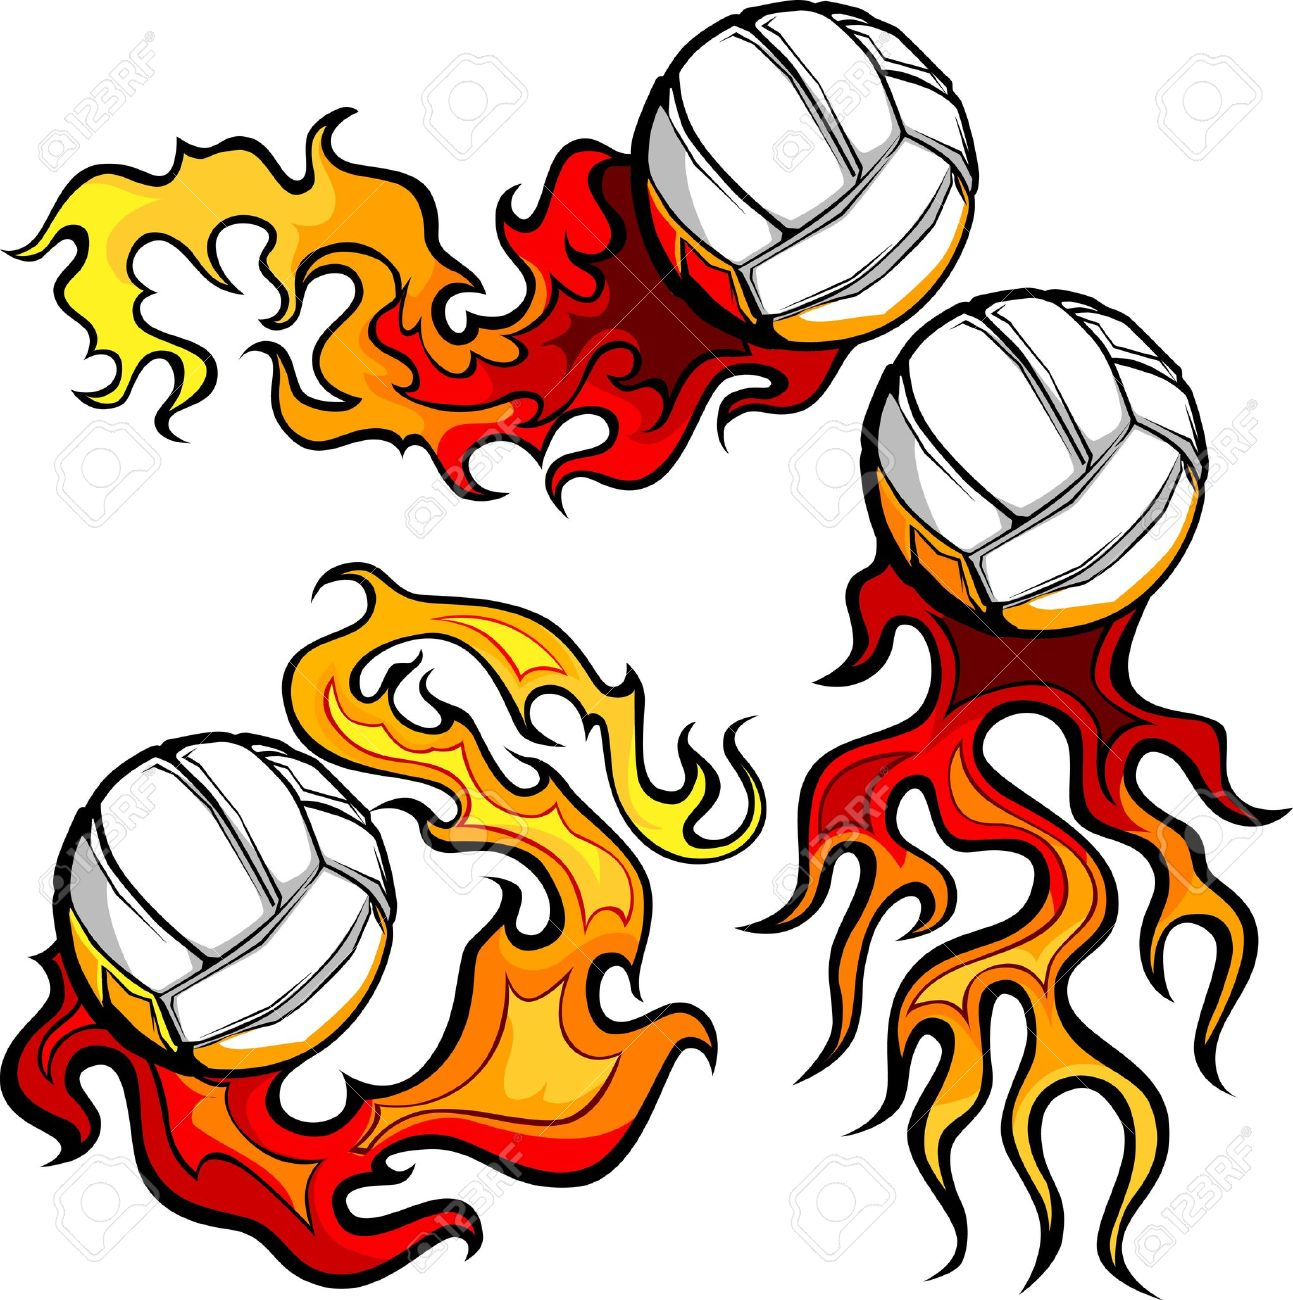 graphic volleyball sport vector image with flames royalty free rh 123rf com